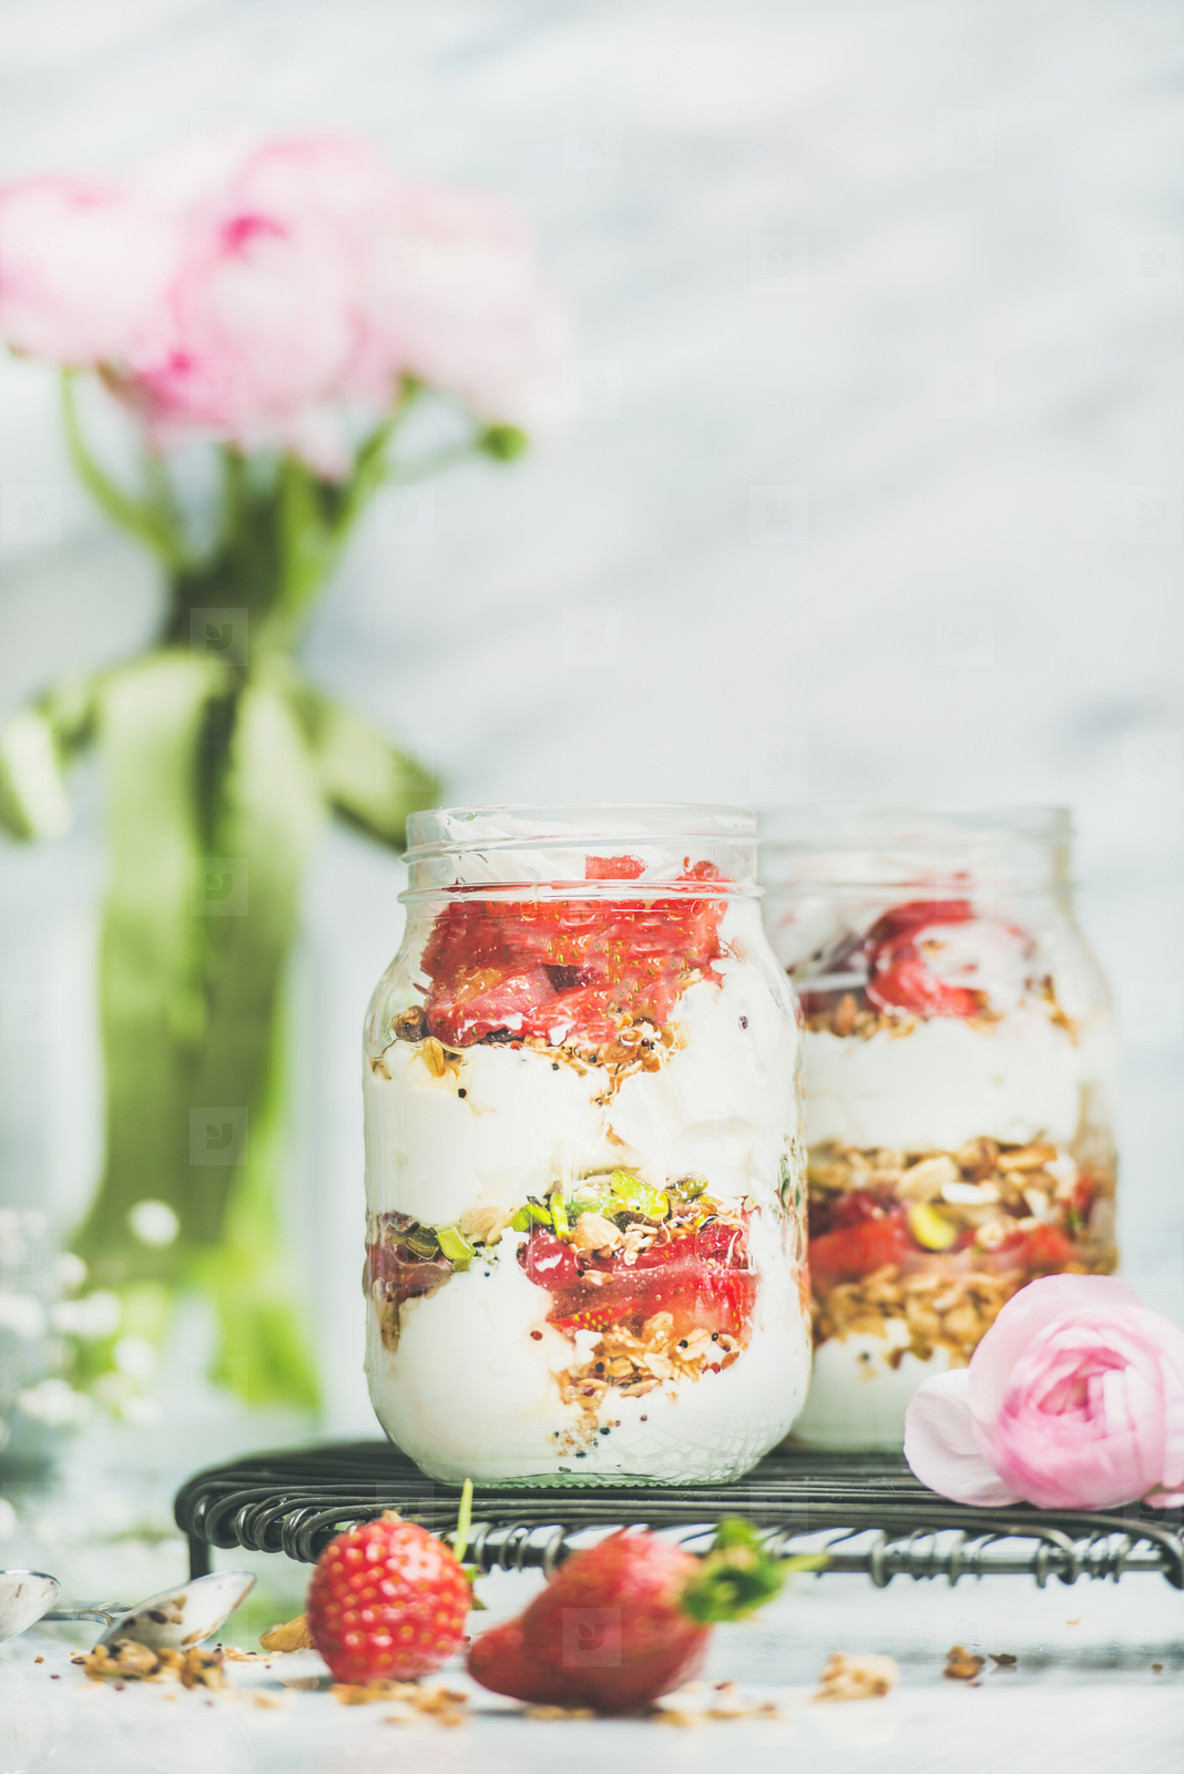 Greek yogurt  granola  strawberry breakfast jars  pink raninkulus flowers